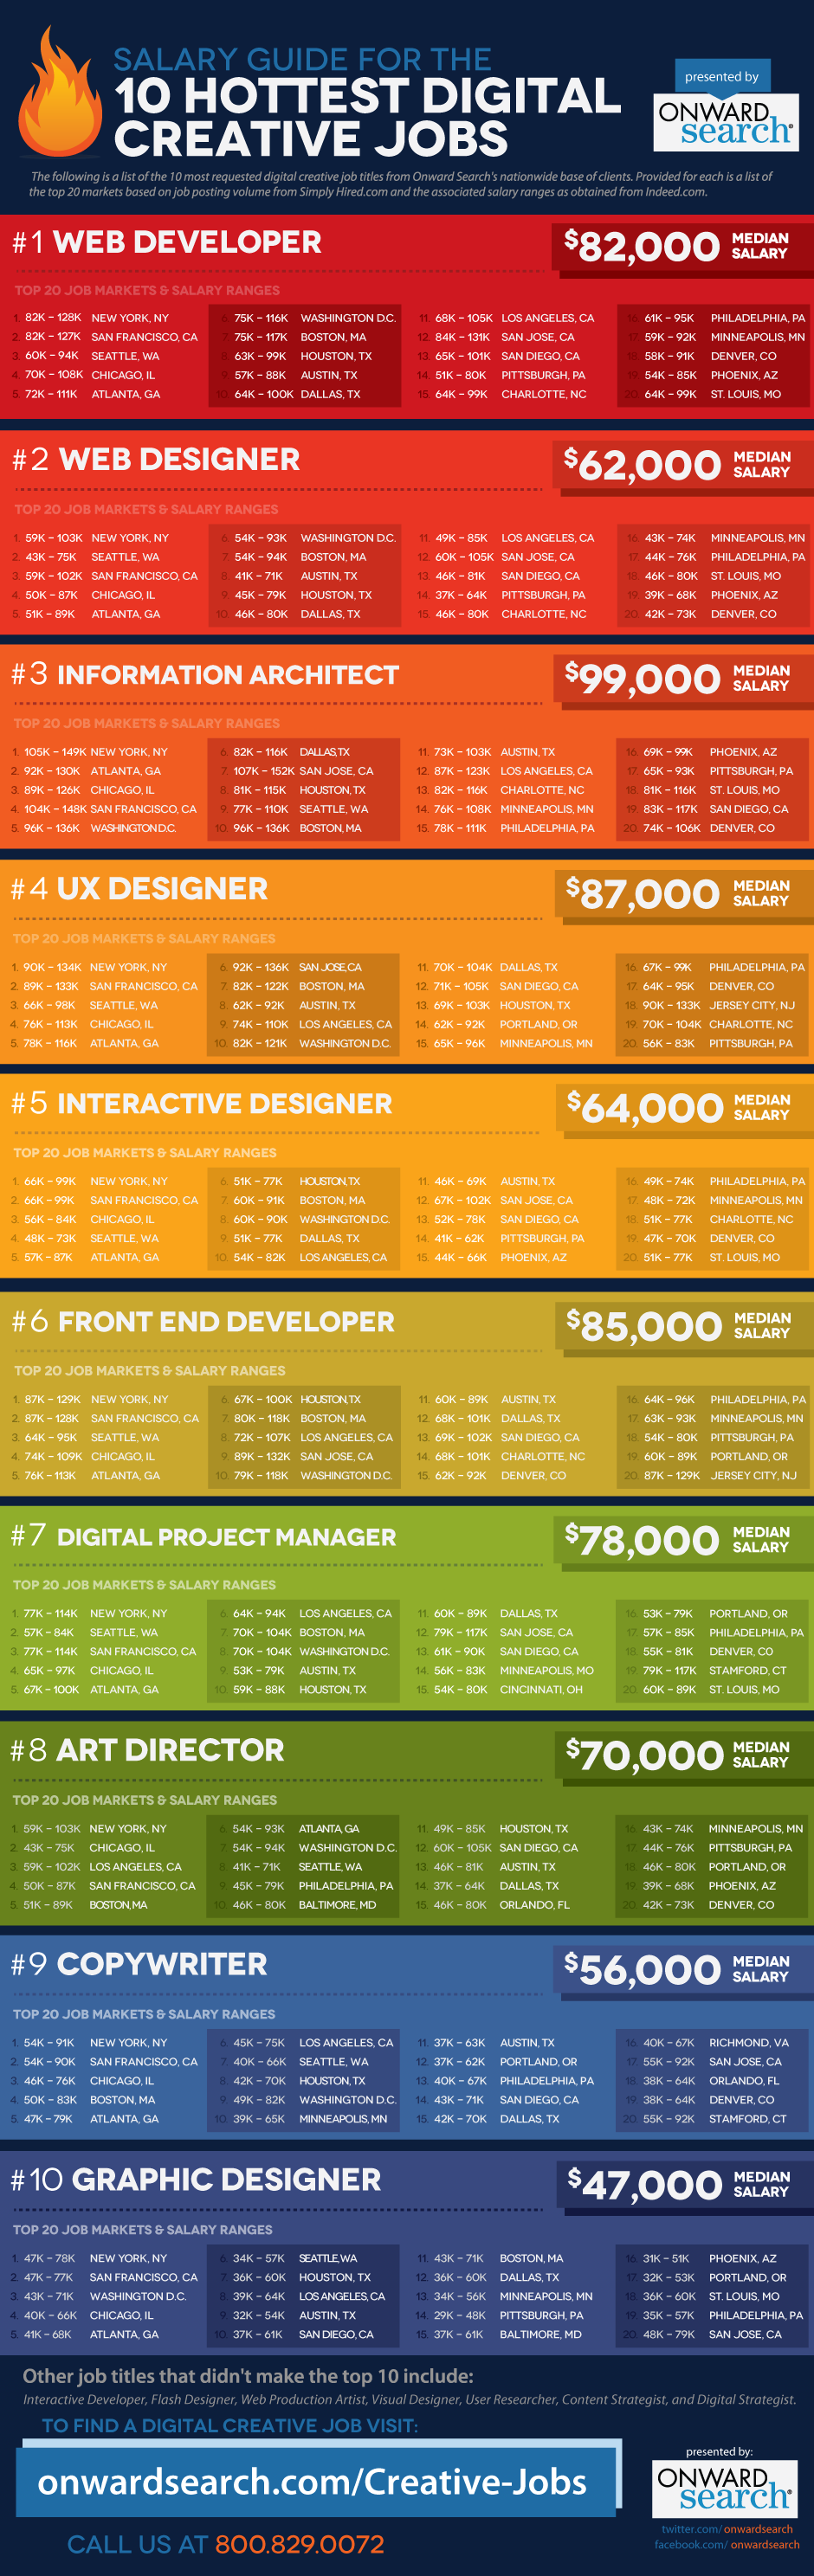 10-Hottest-Digital-Creative-Jobs-infographic